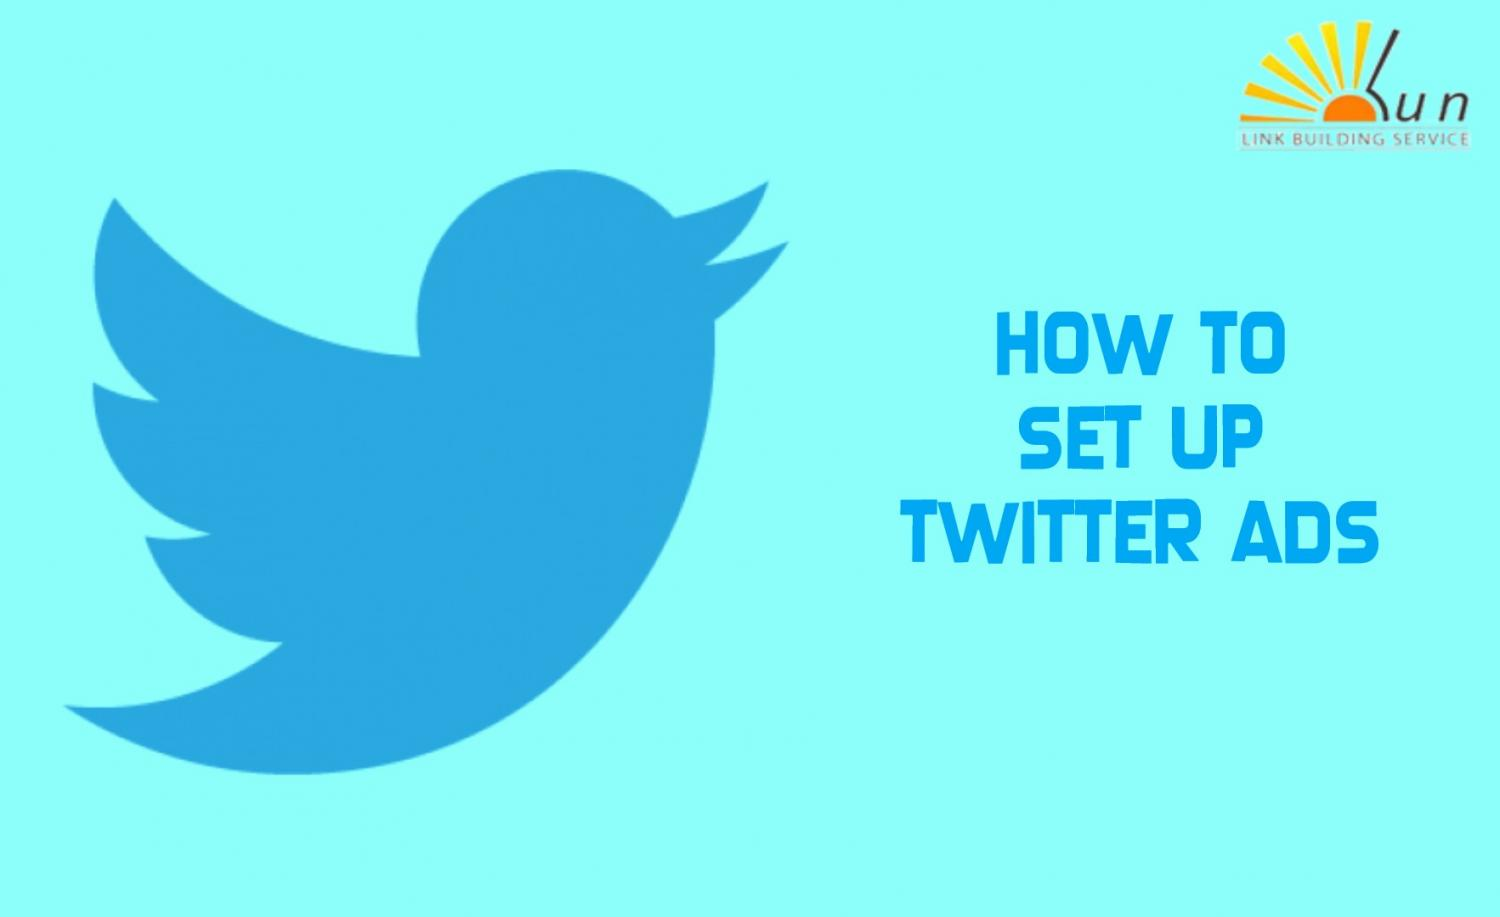 How to Set Up Twitter Ads